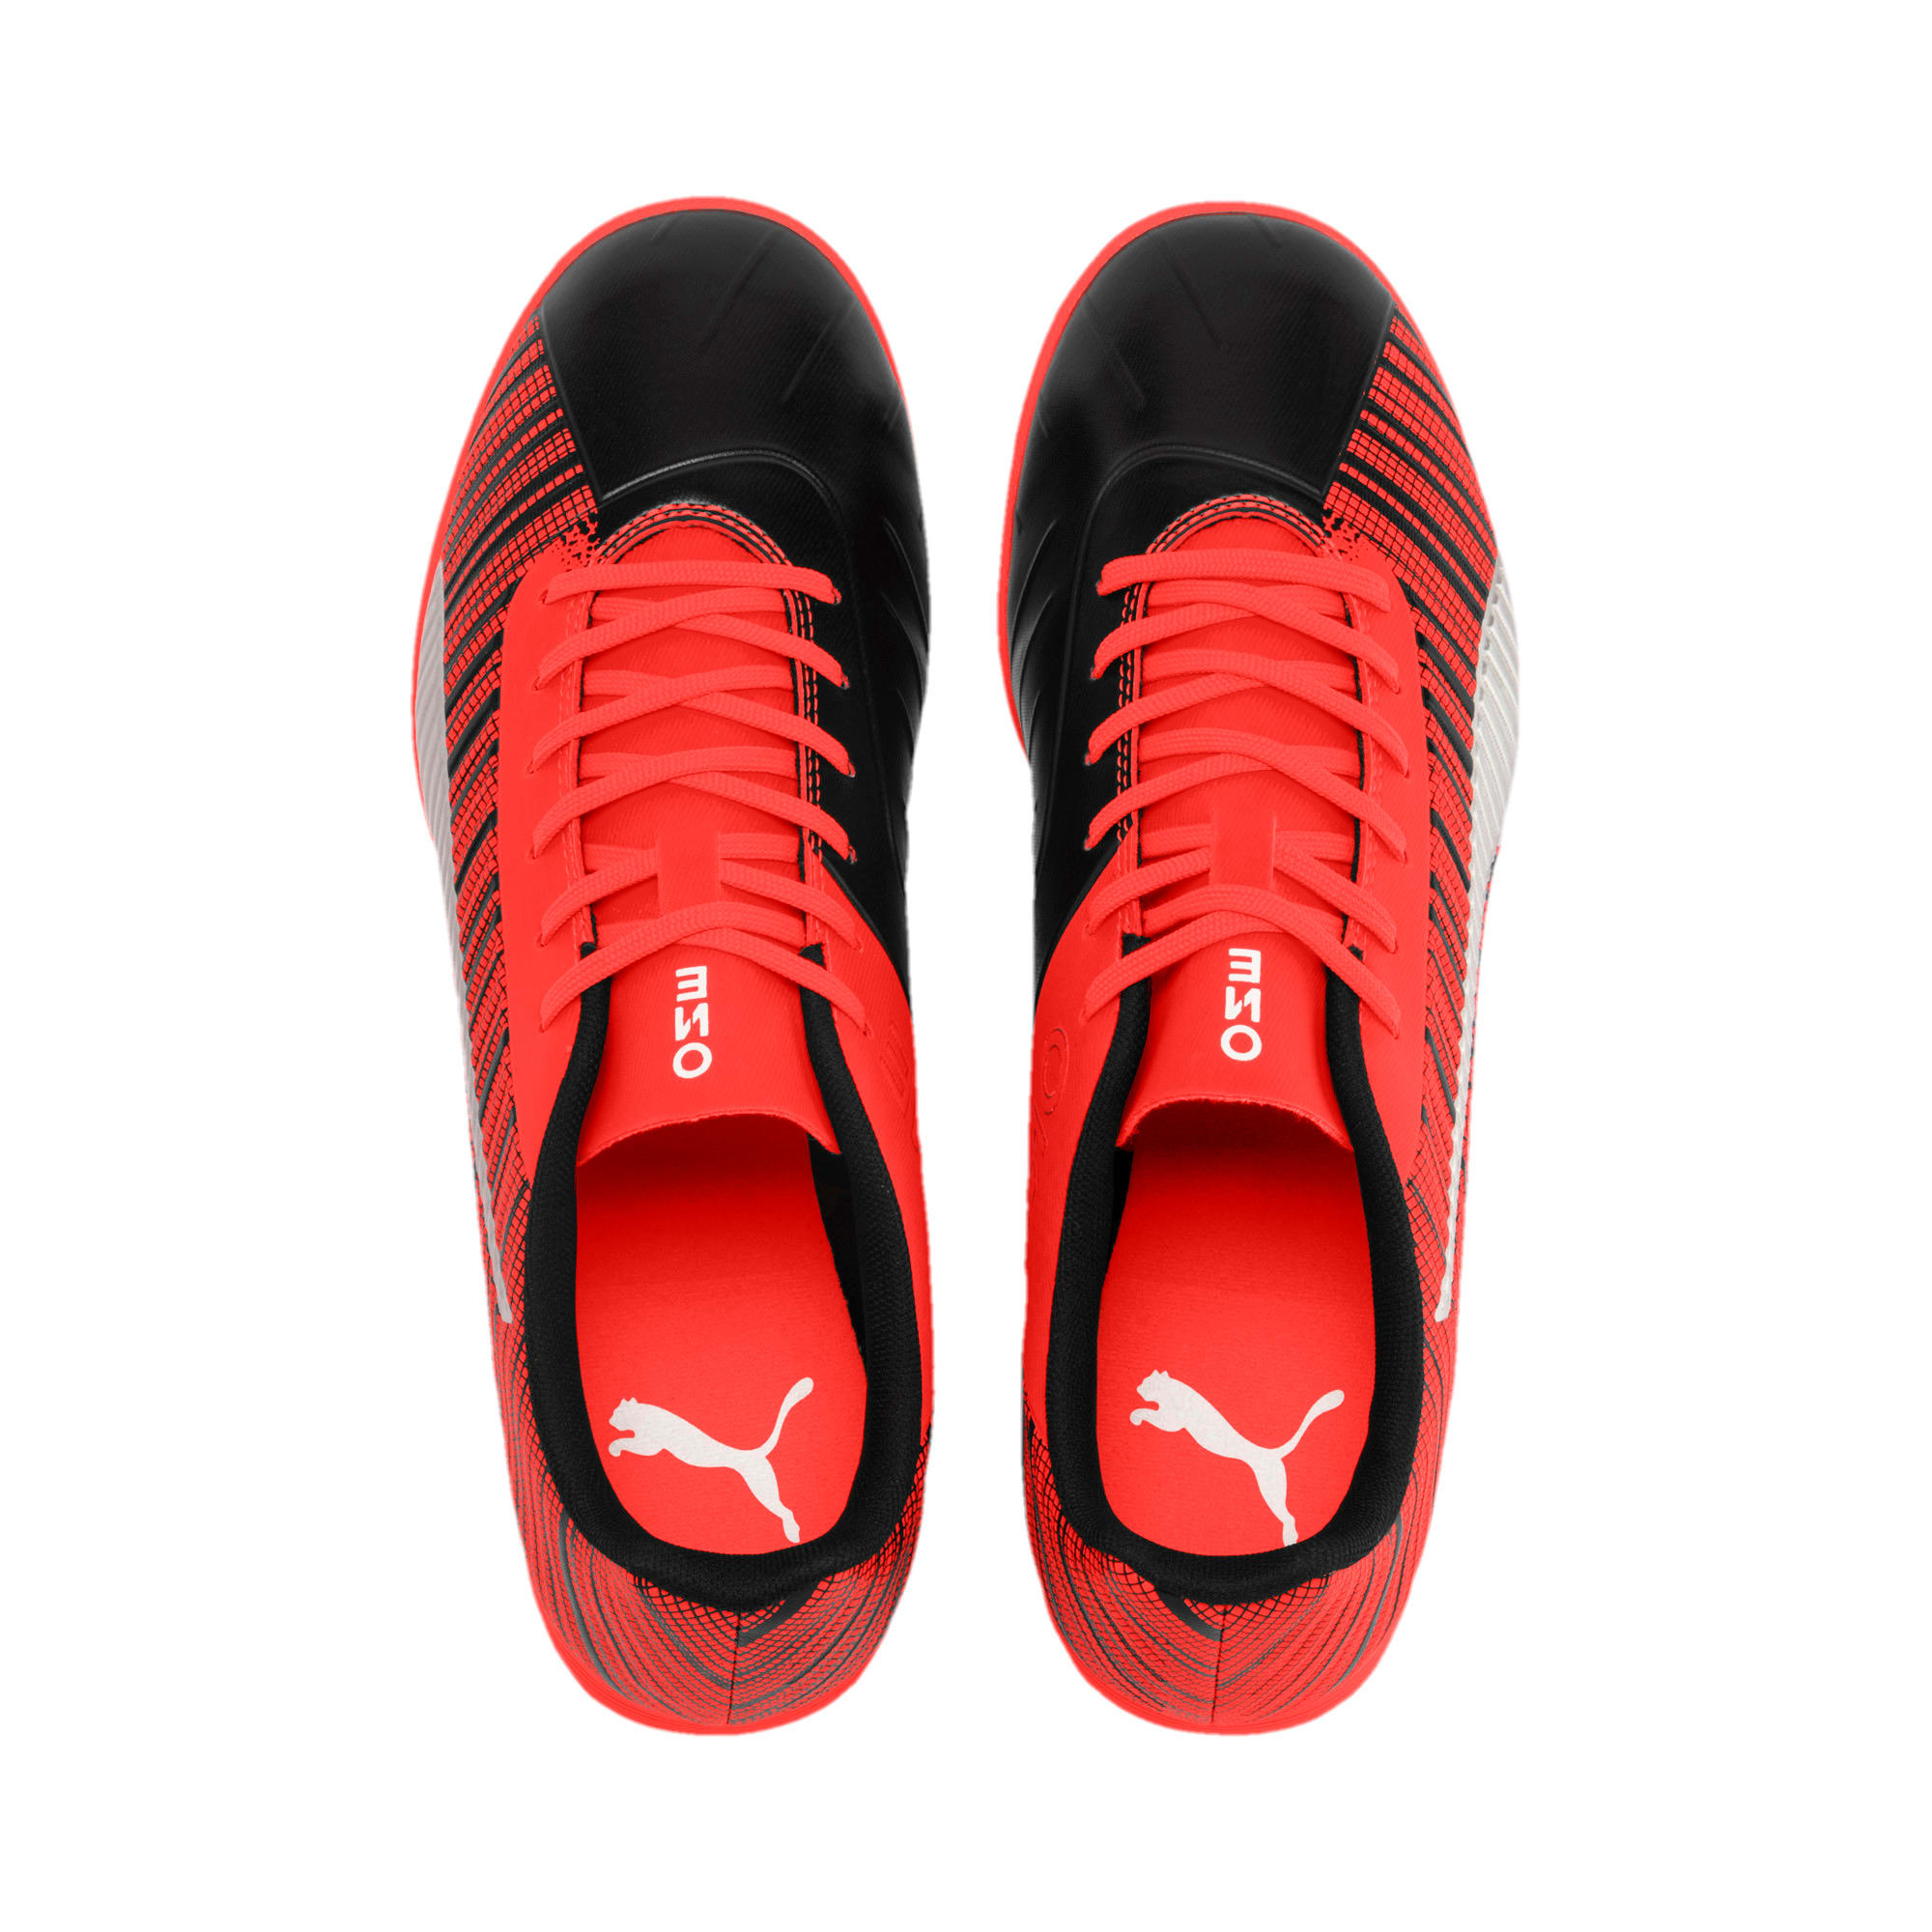 Thumbnail 7 of PUMA ONE 5.4 IT Men's Football Boots, Black-Nrgy Red-Aged Silver, medium